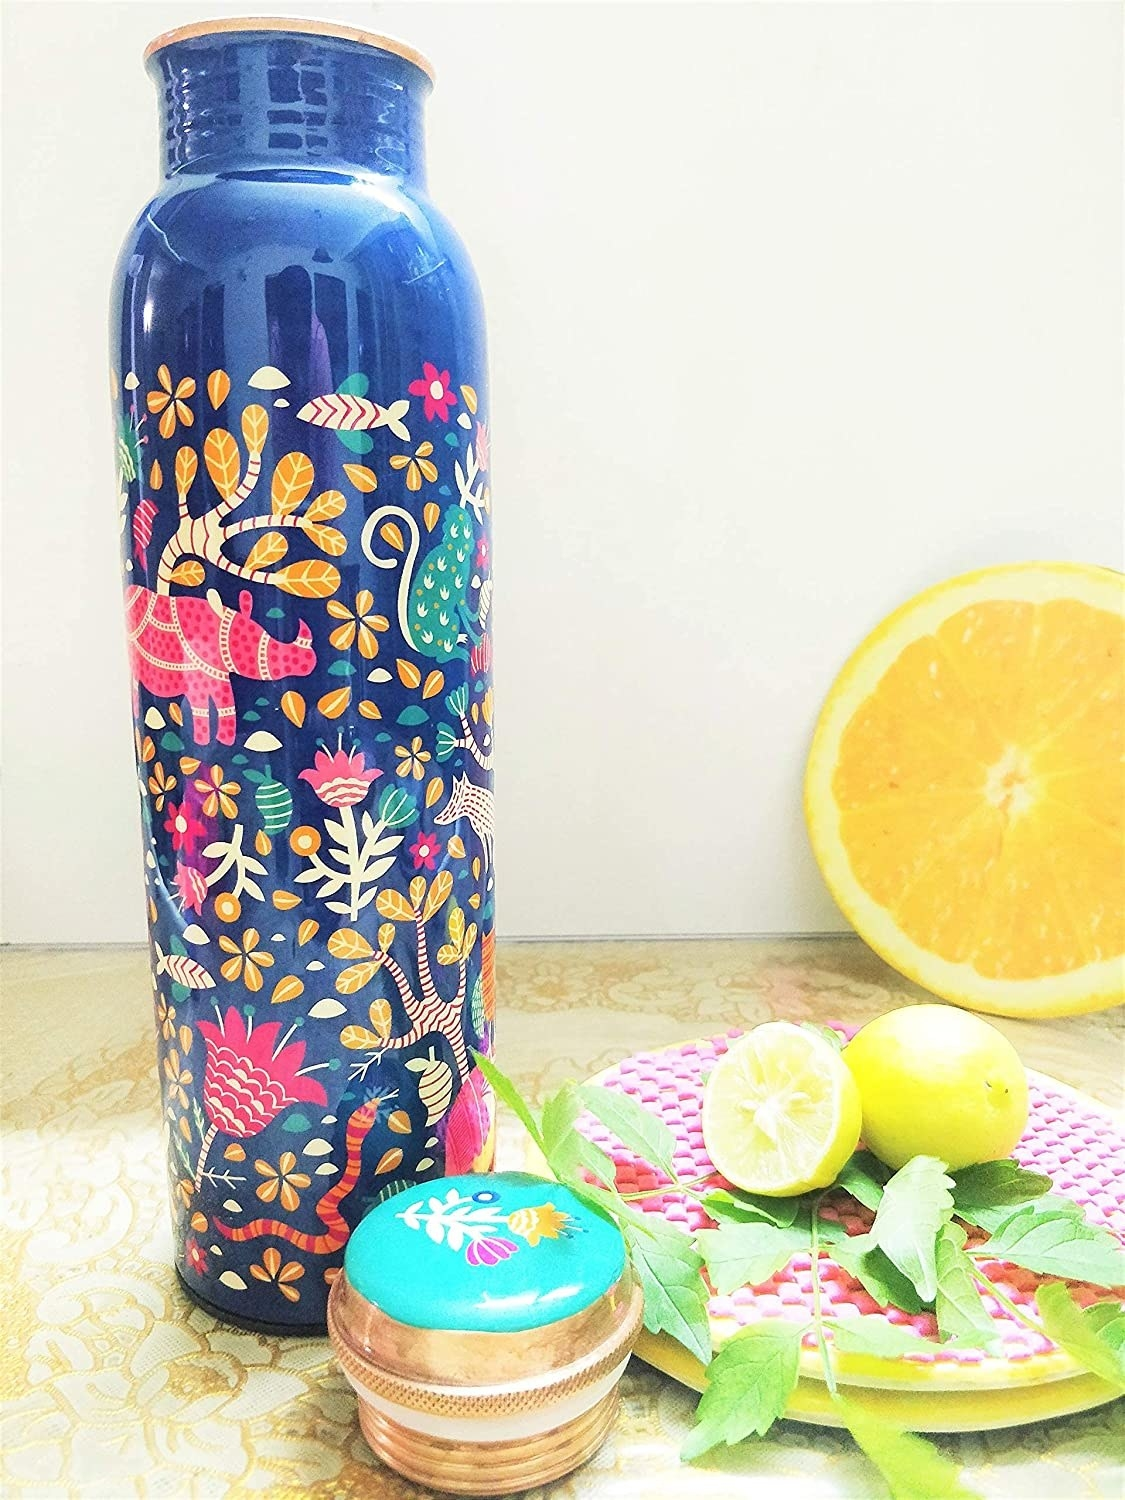 A blue copper water bottle with floral patterns